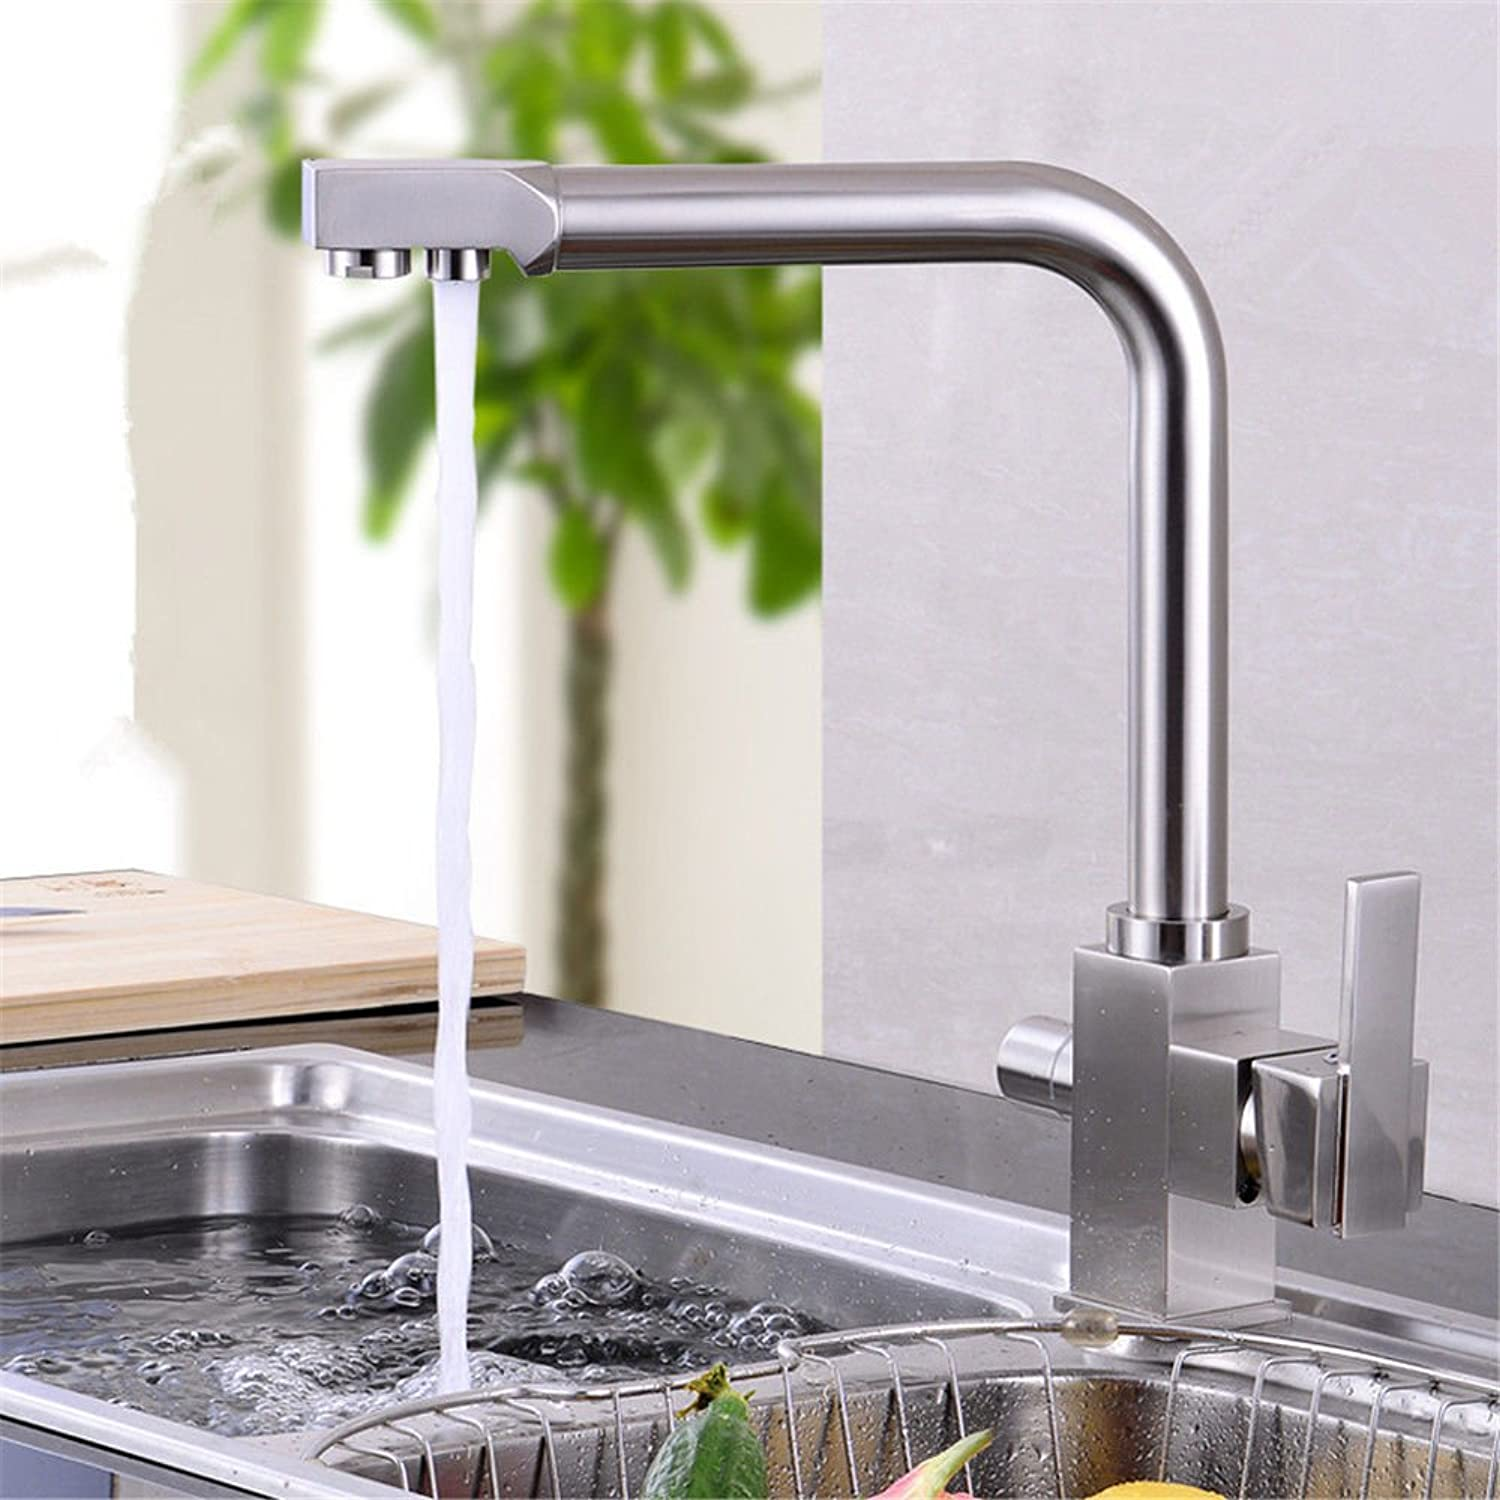 Hlluya Professional Sink Mixer Tap Kitchen Faucet The Brass chrome 2-hole course basin mixer redation sink cold water faucet kitchen faucet,